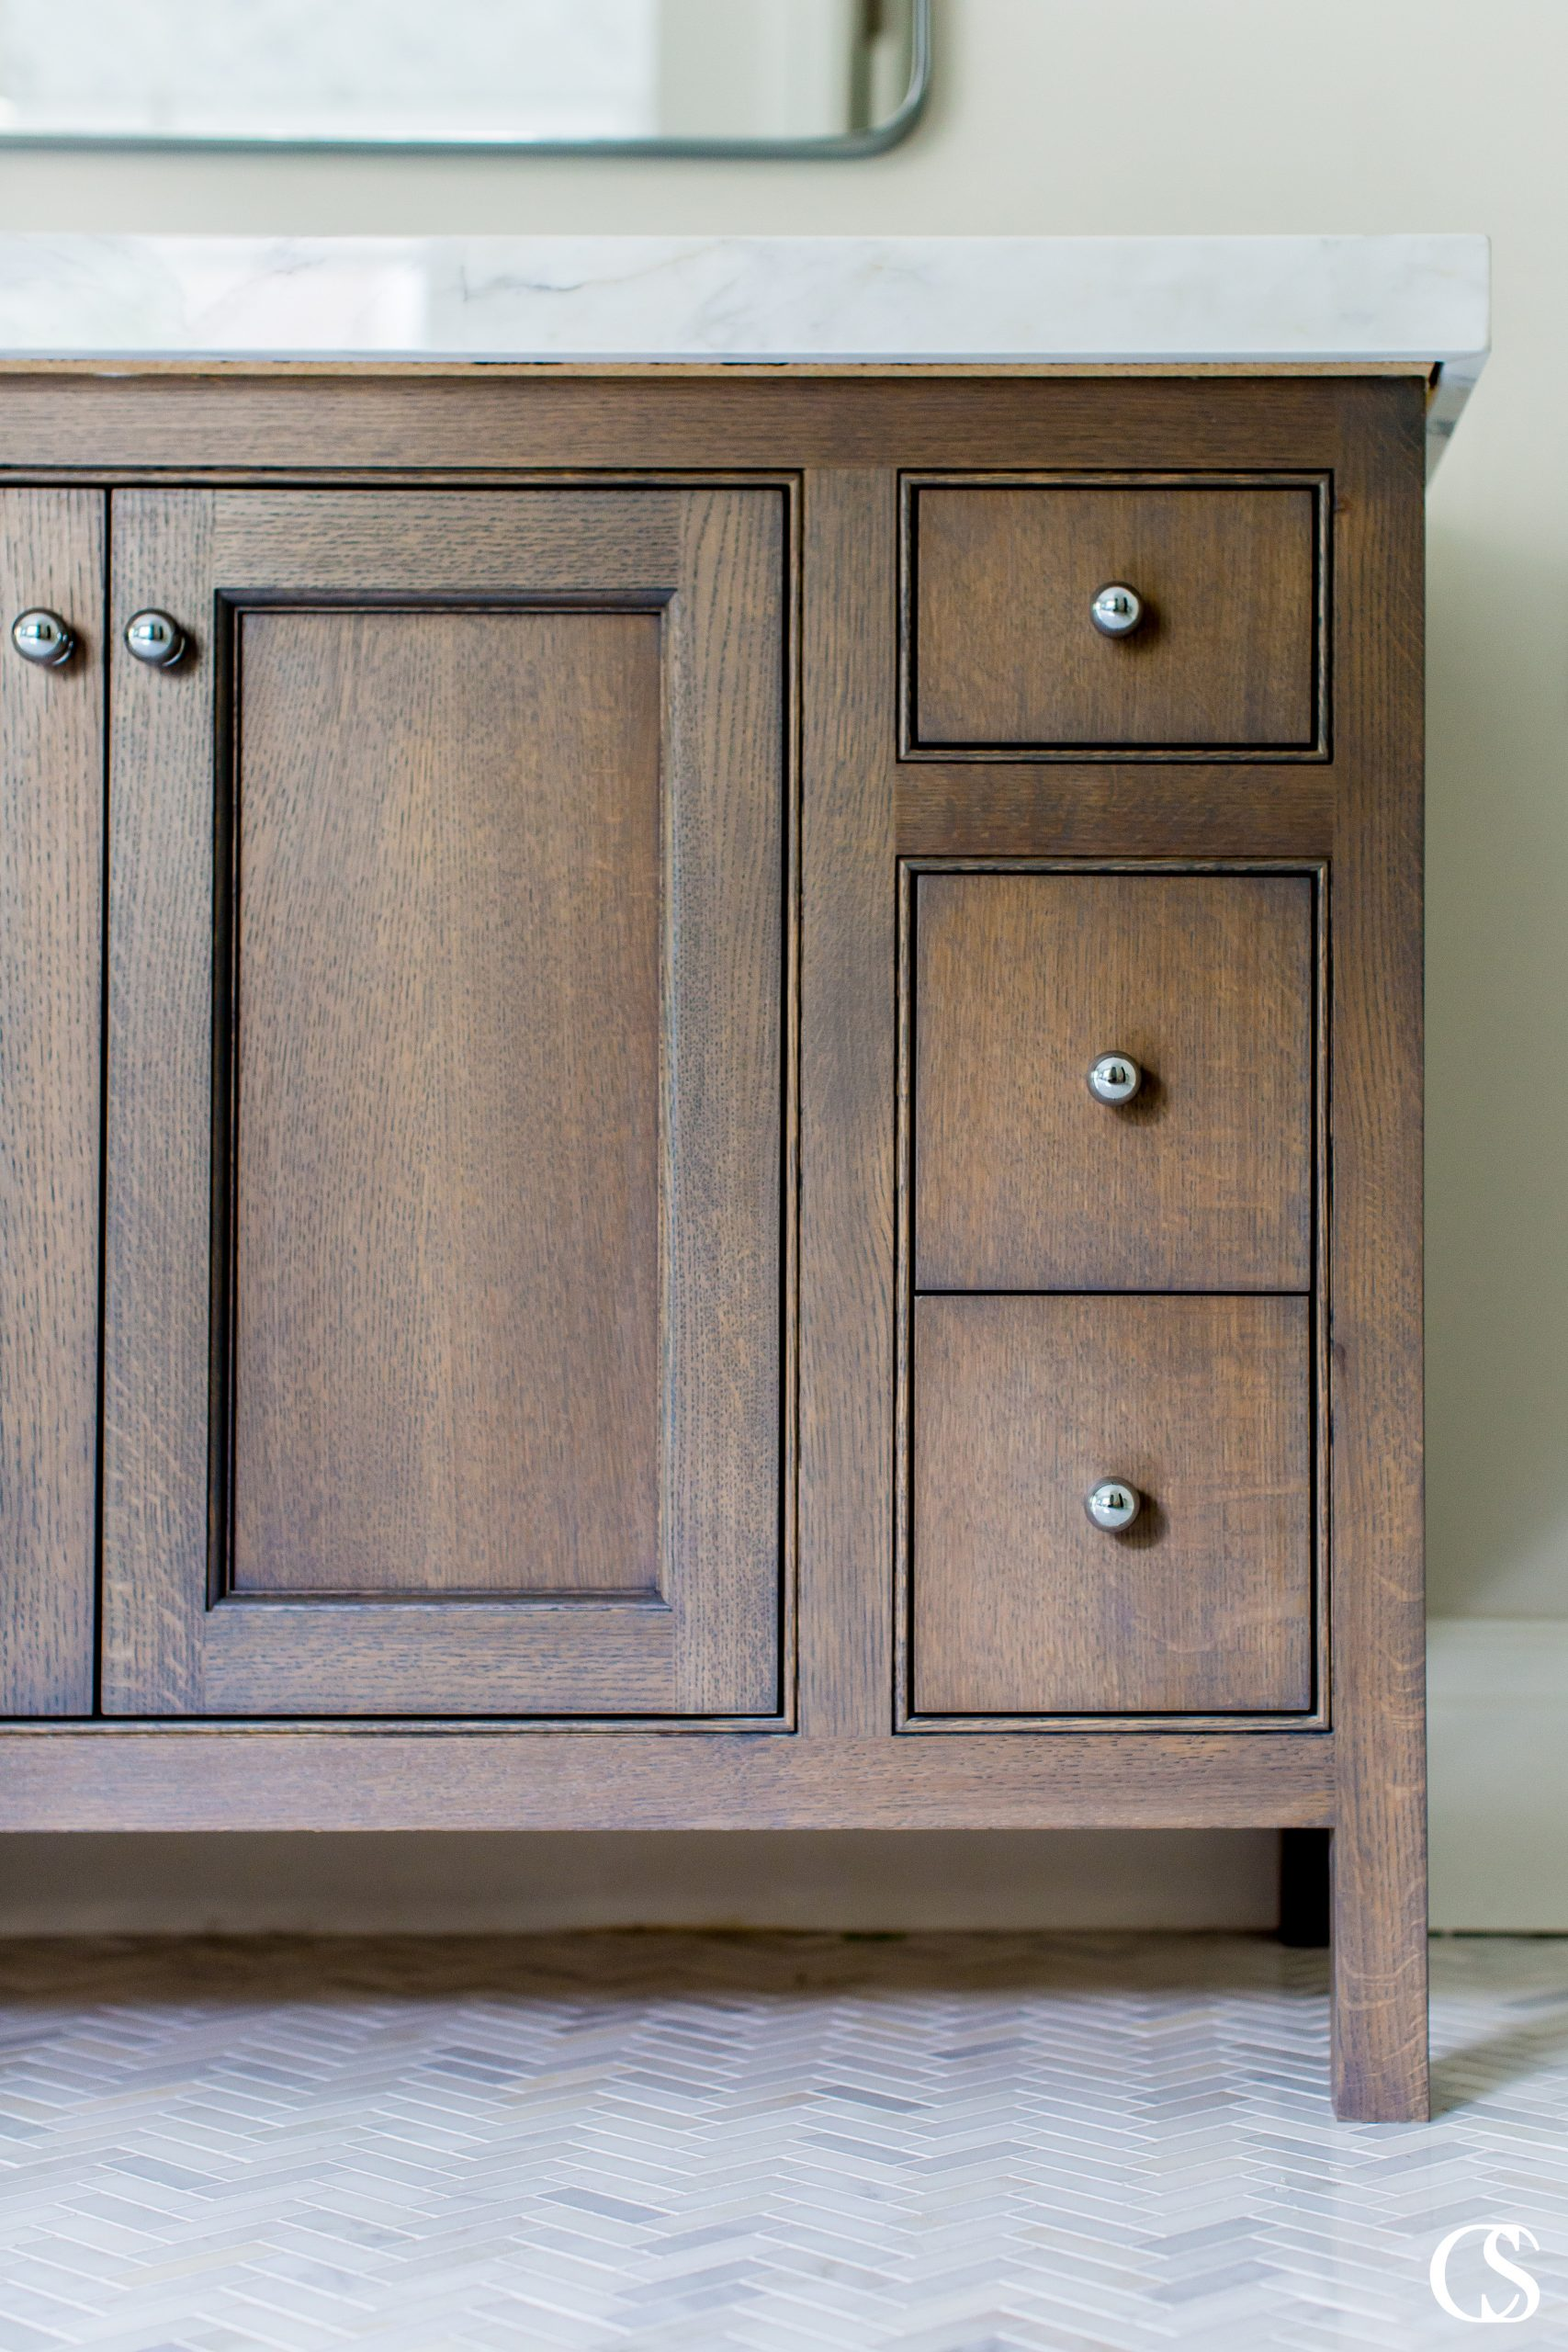 Adding a bead to inset cabinets can add just the extra boost of personality a custom cabinet needs to set it apart. Learn more about the best bathroom cabinet designs at ChristopherScottCabinetry.com!